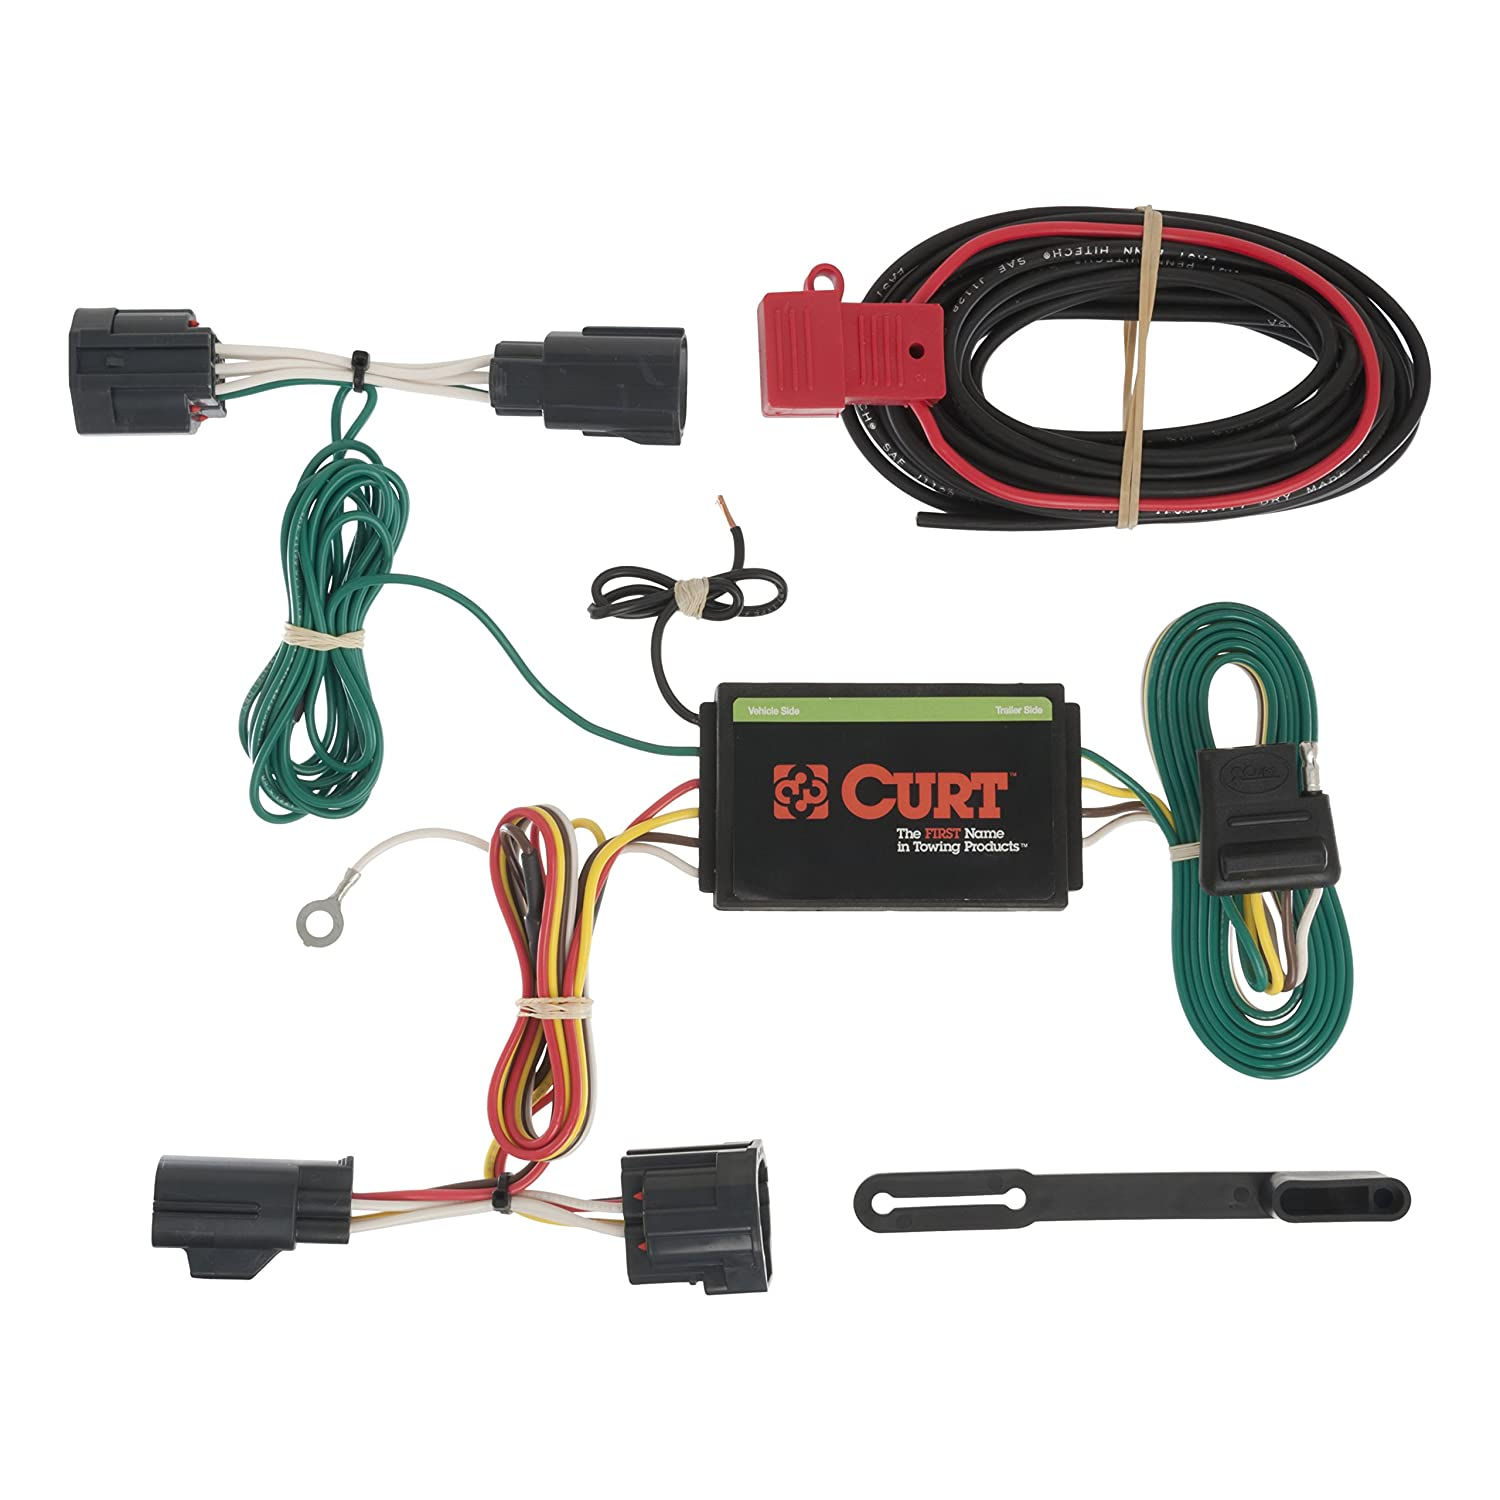 Amazoncom CURT 56183 Custom Wiring Harness Automotive